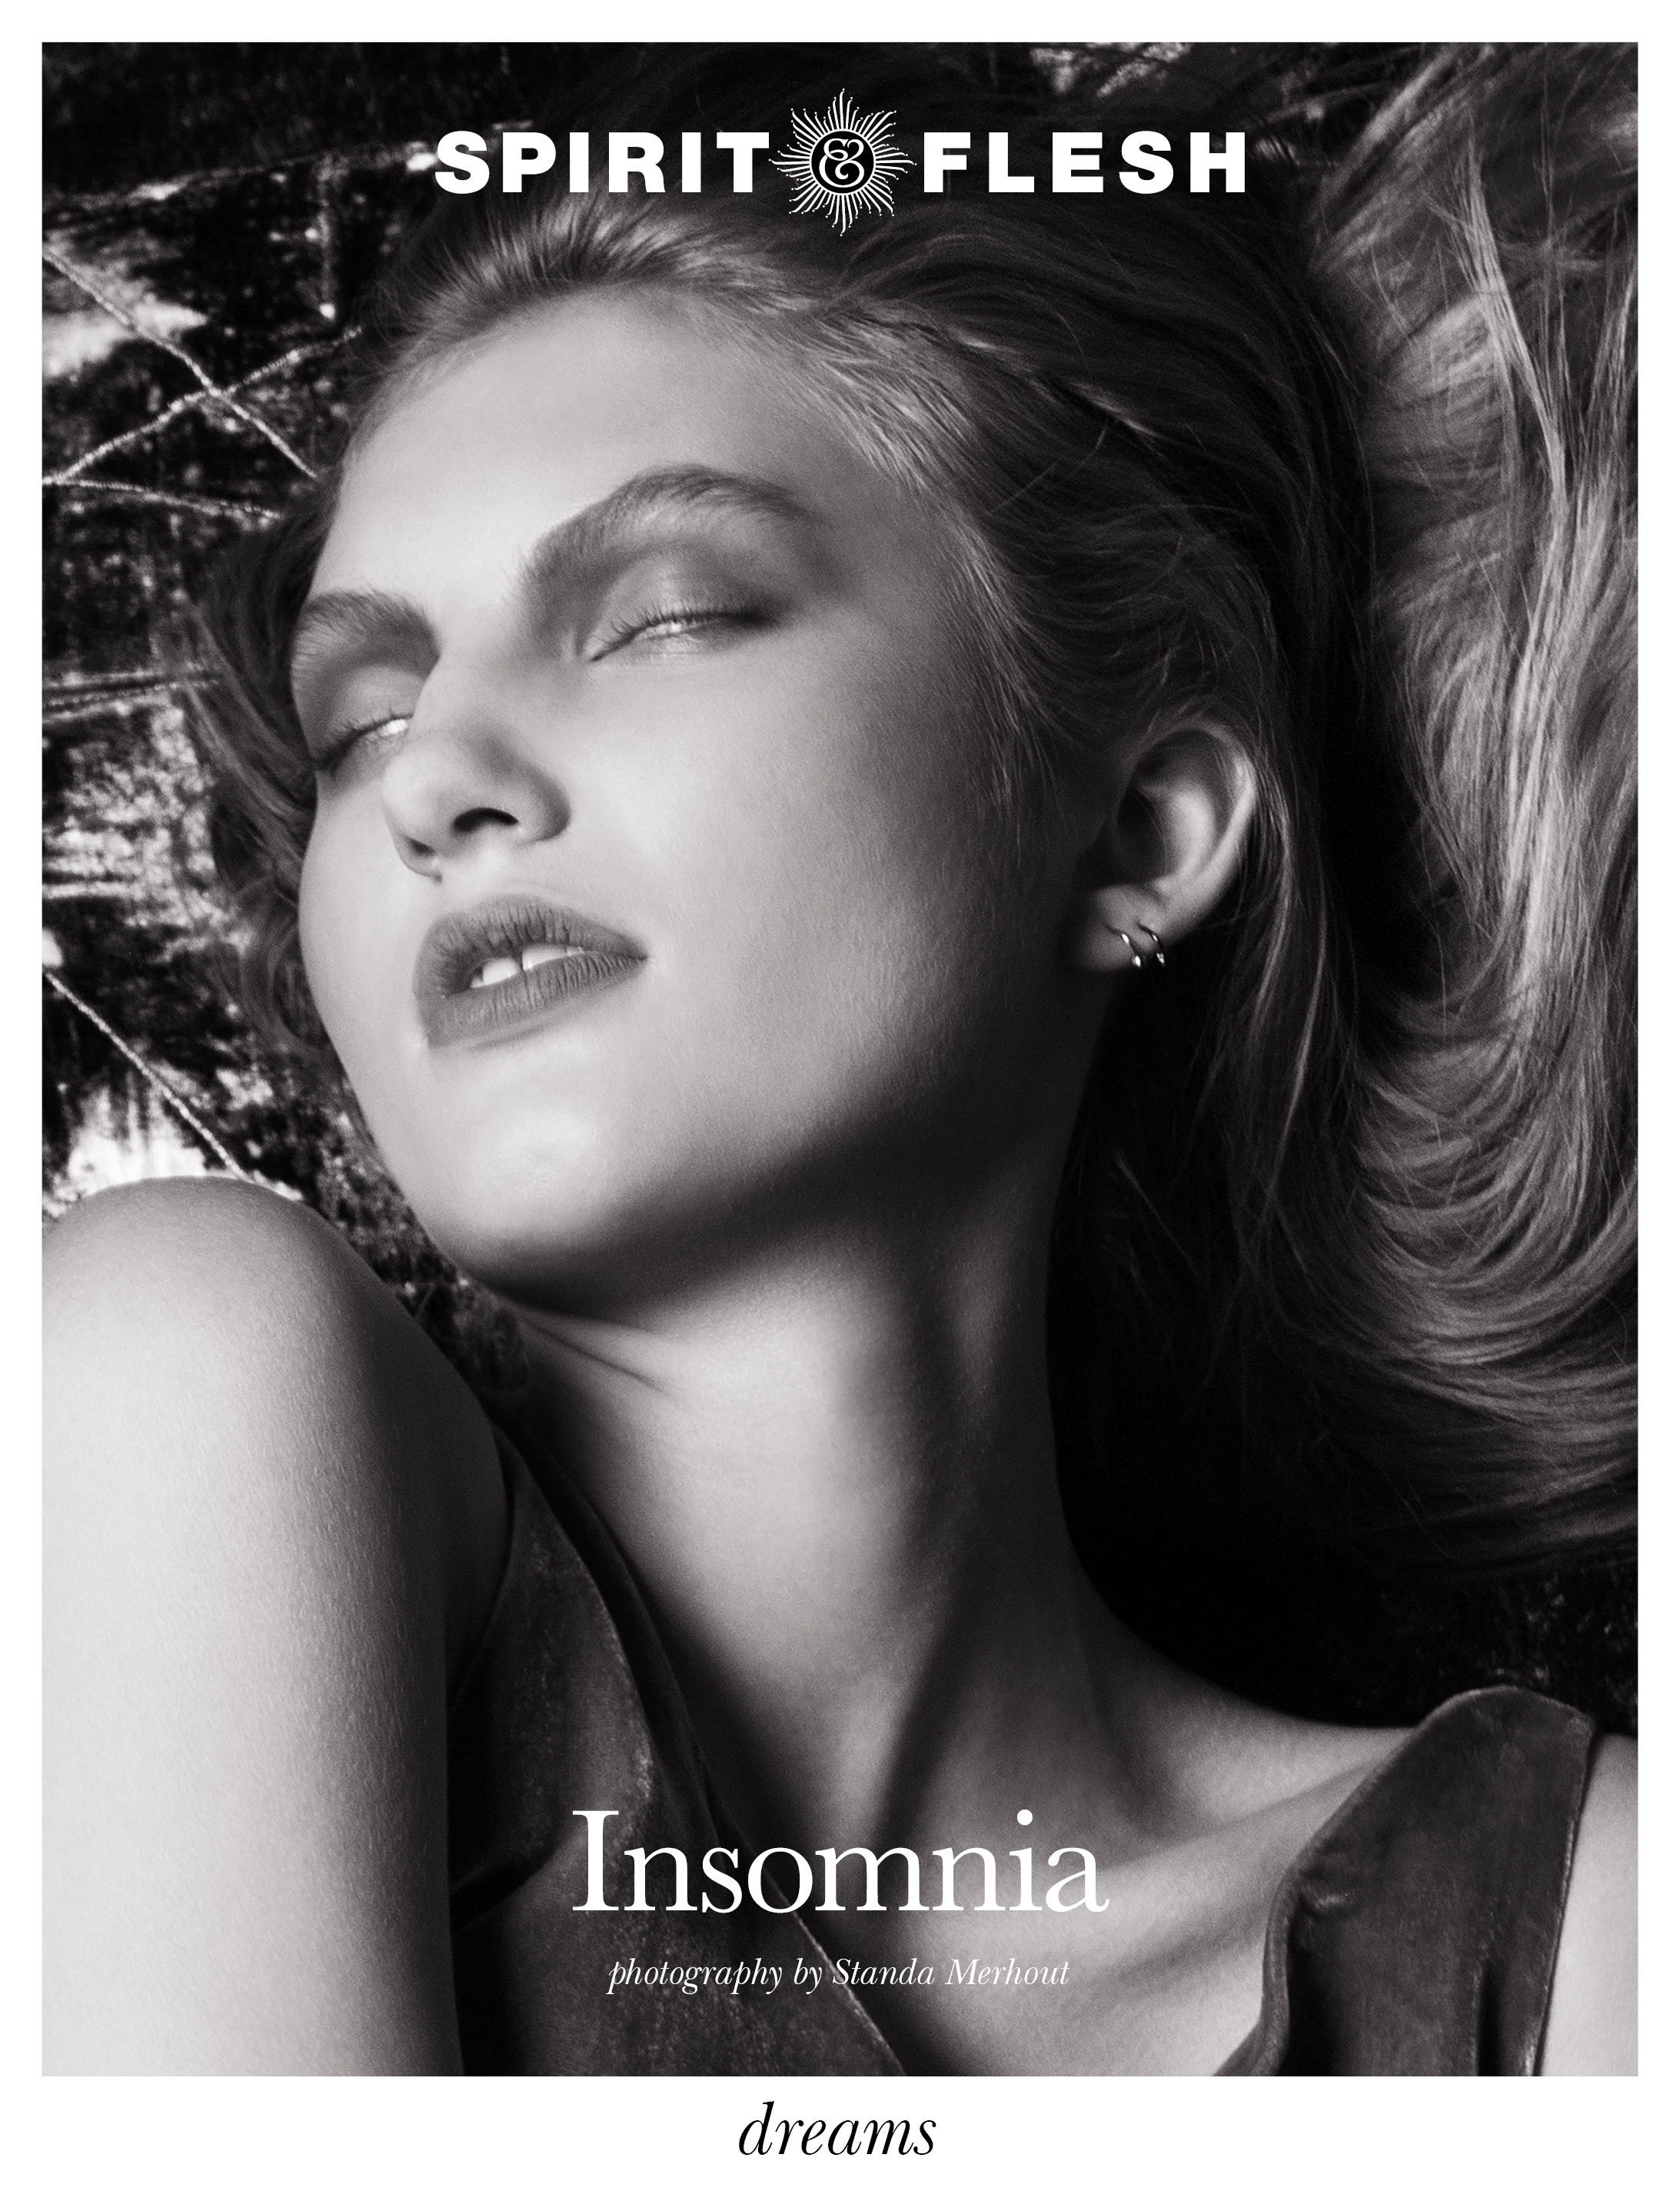 6-Spirit-&-Flesh-Magazine_Dreams-issue-Cover_INSOMNIA by Standa Merhout